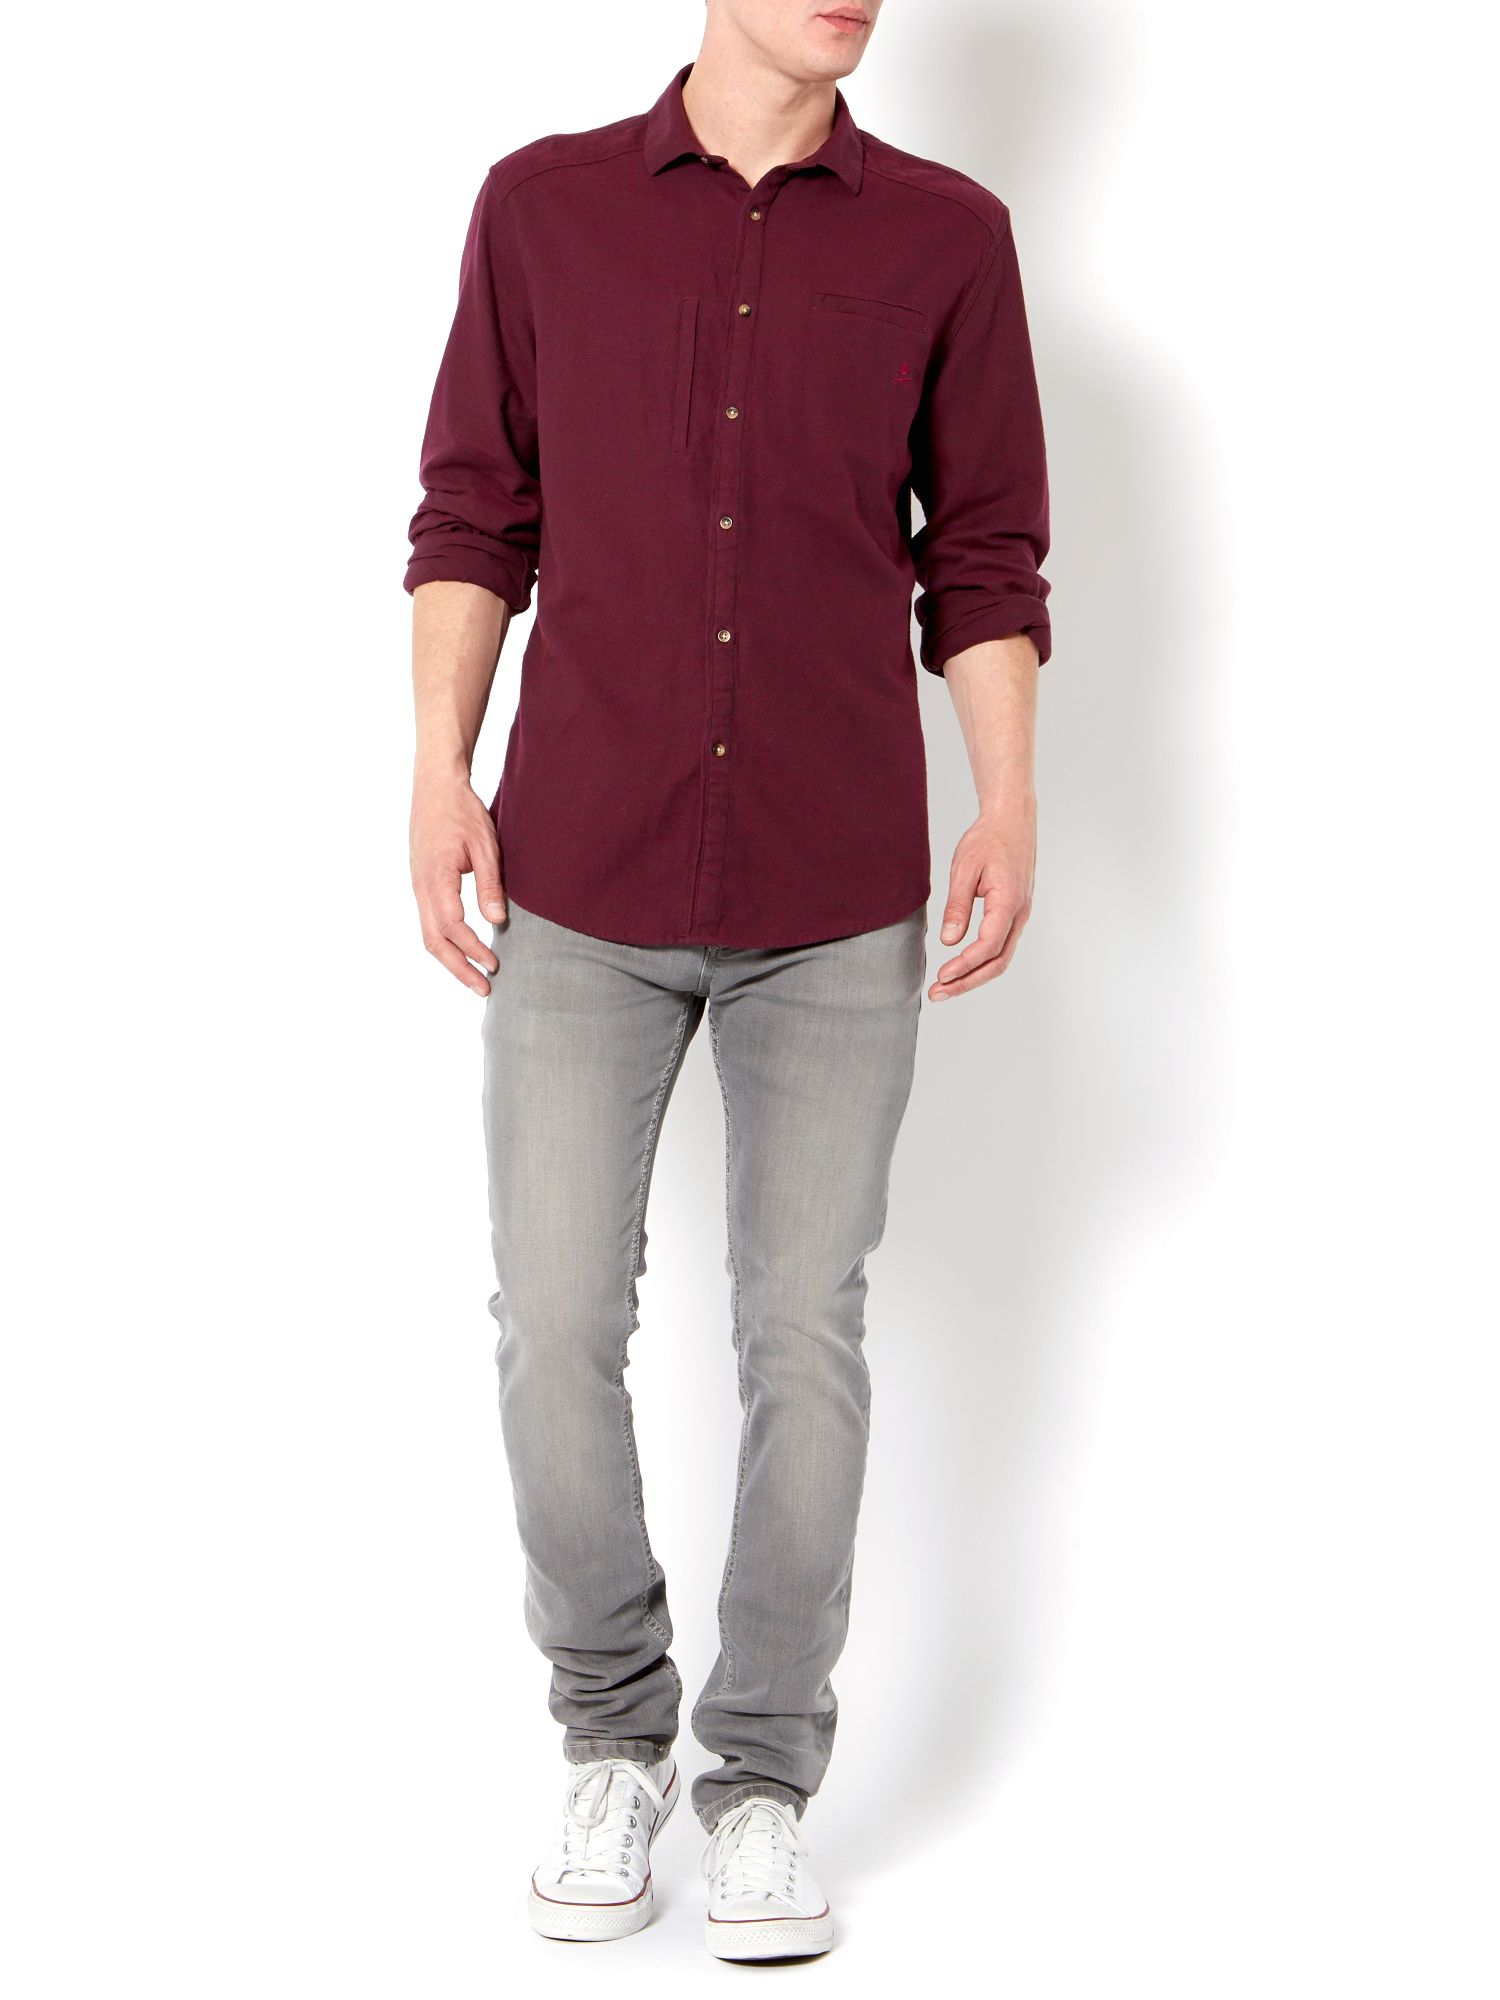 Toddington long sleeve brushed shirt